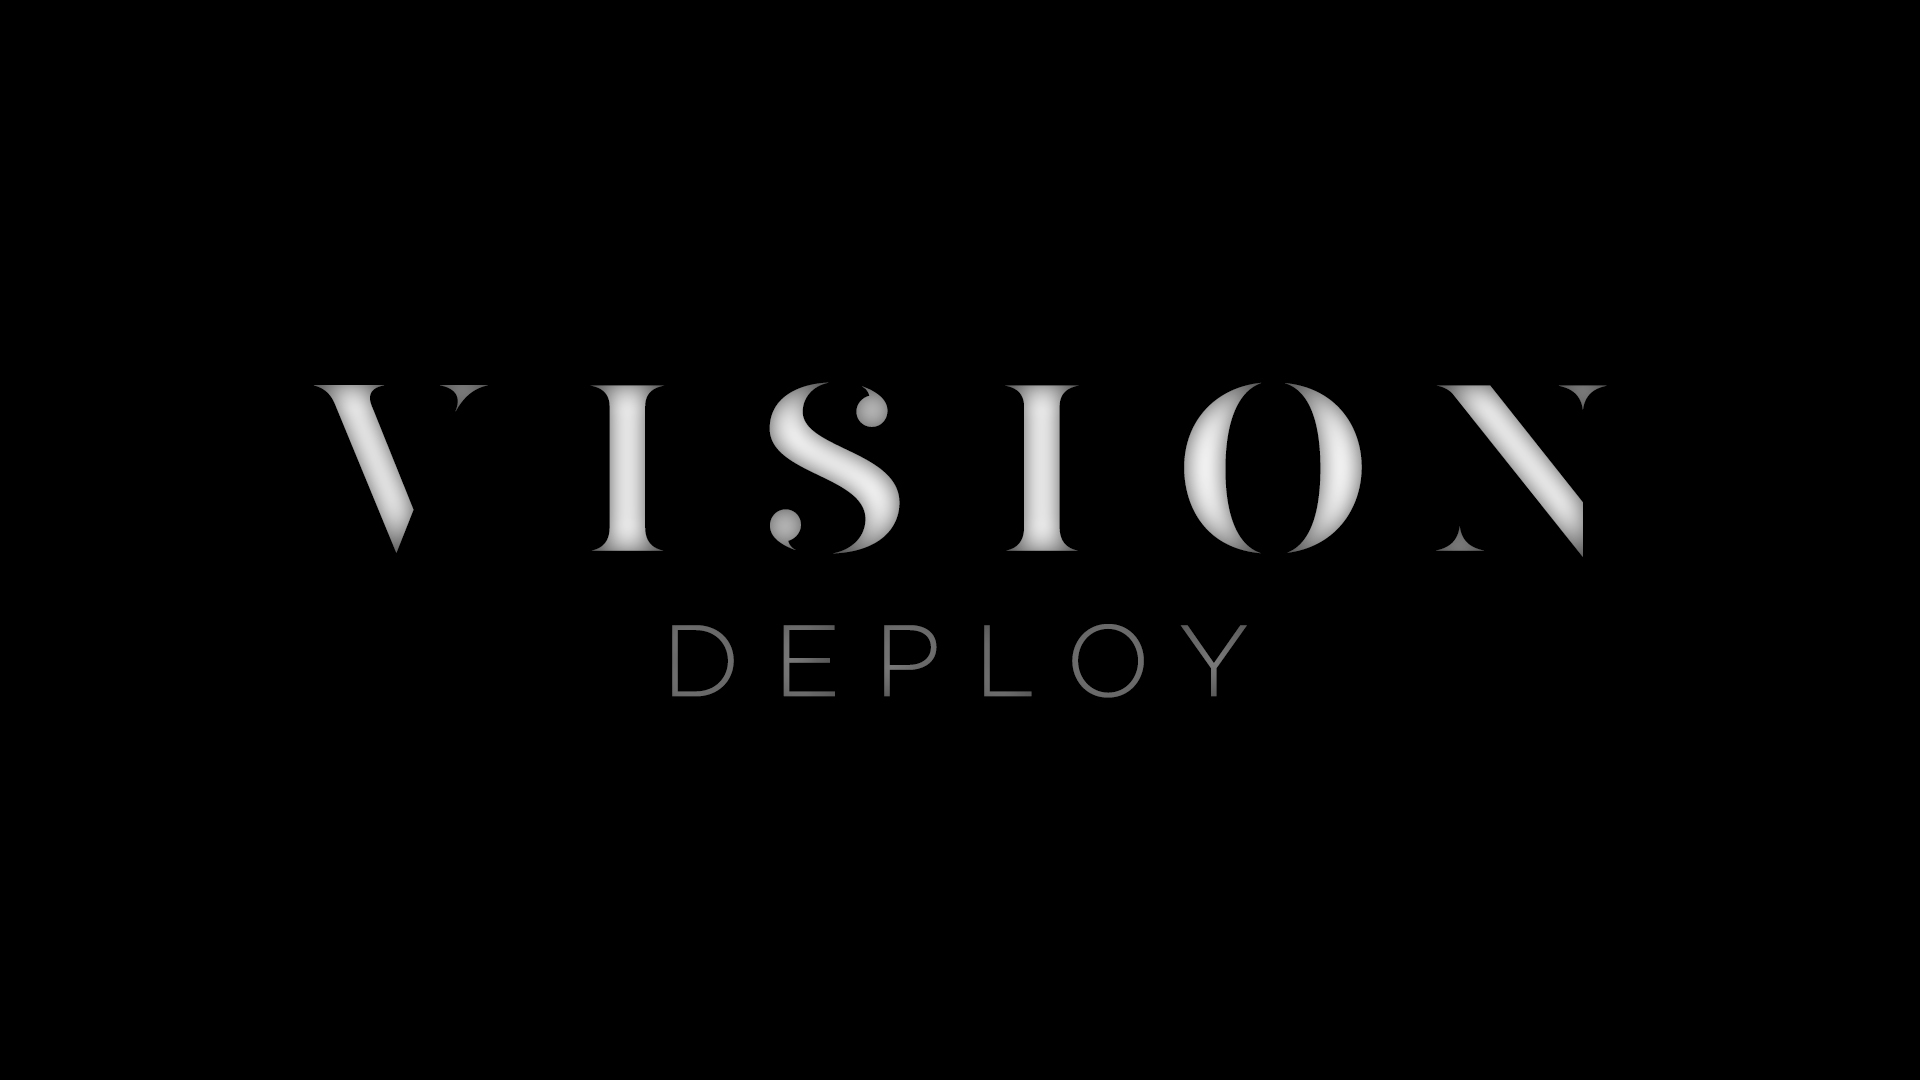 Vision-Cover-Image-Deploy.jpg